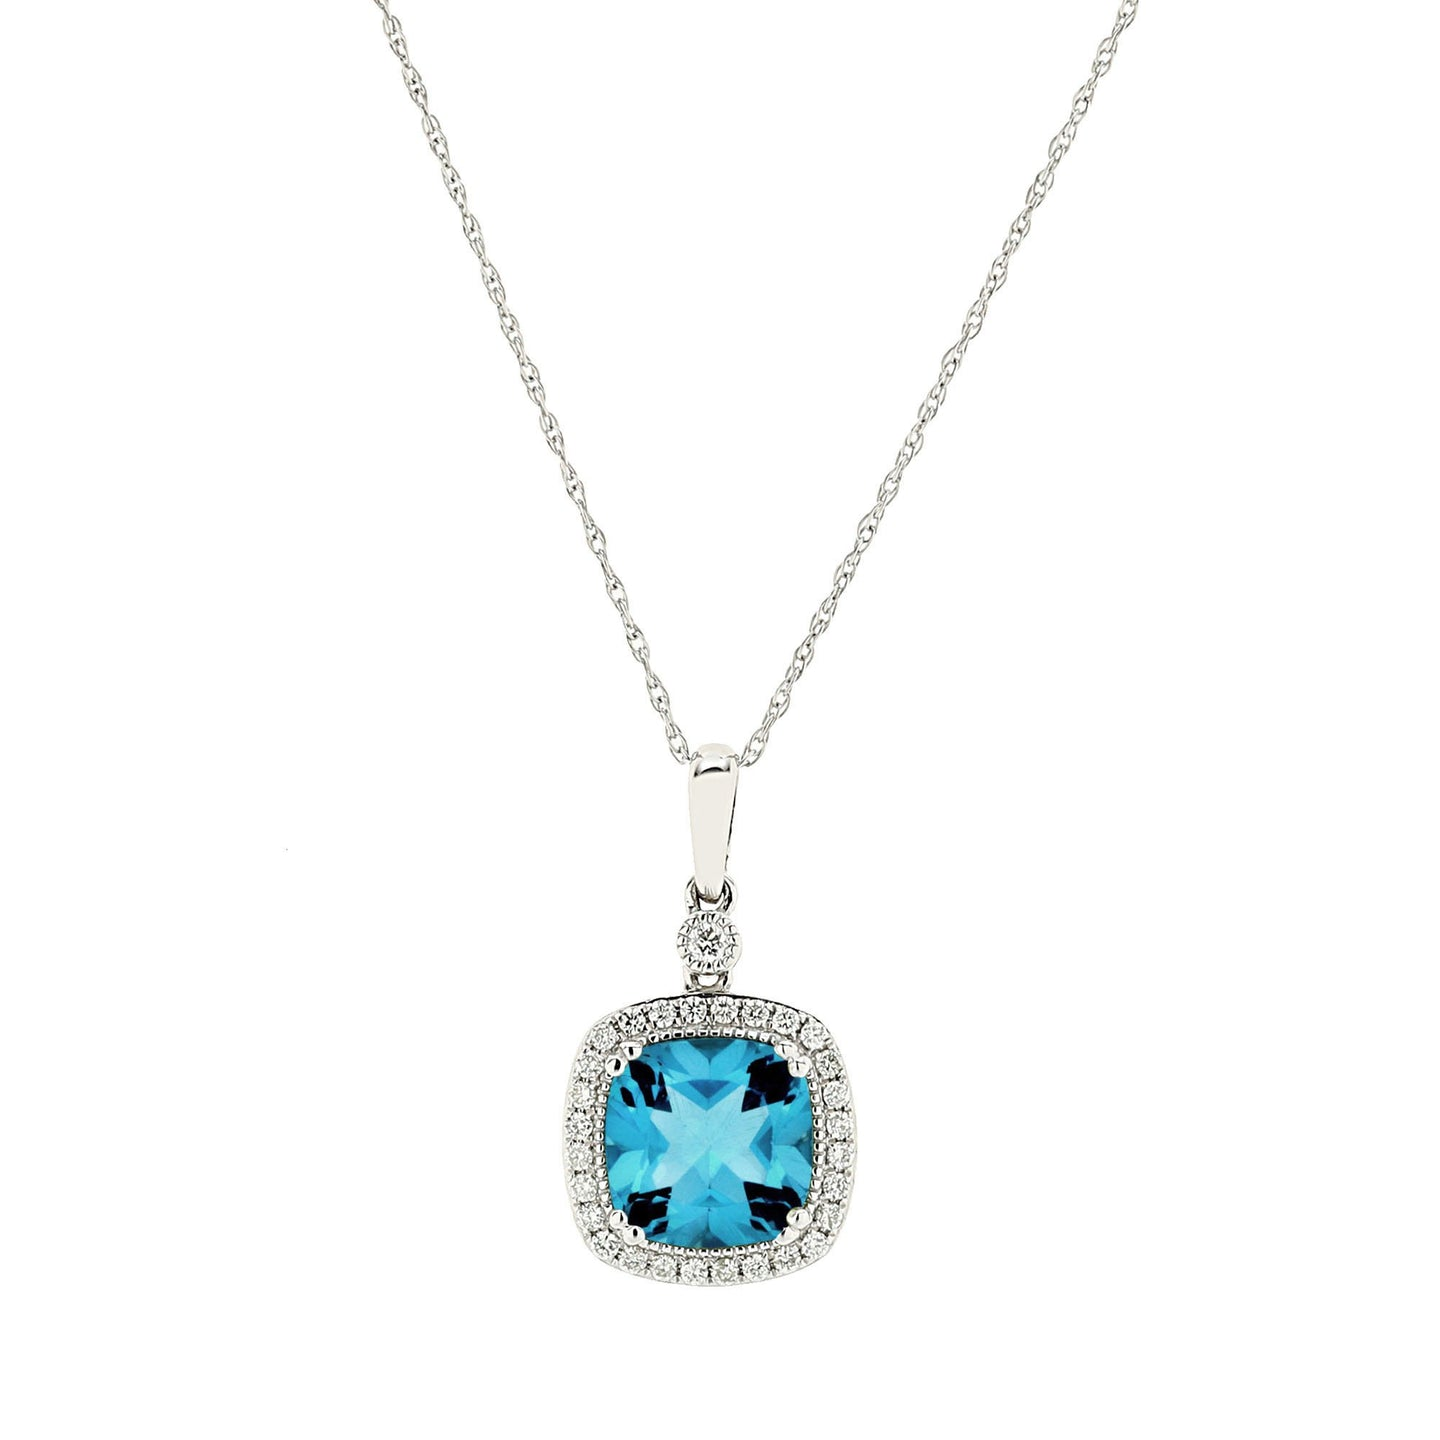 Sabel Collection 14K White Gold Cushion Cut Blue Topaz Pendant